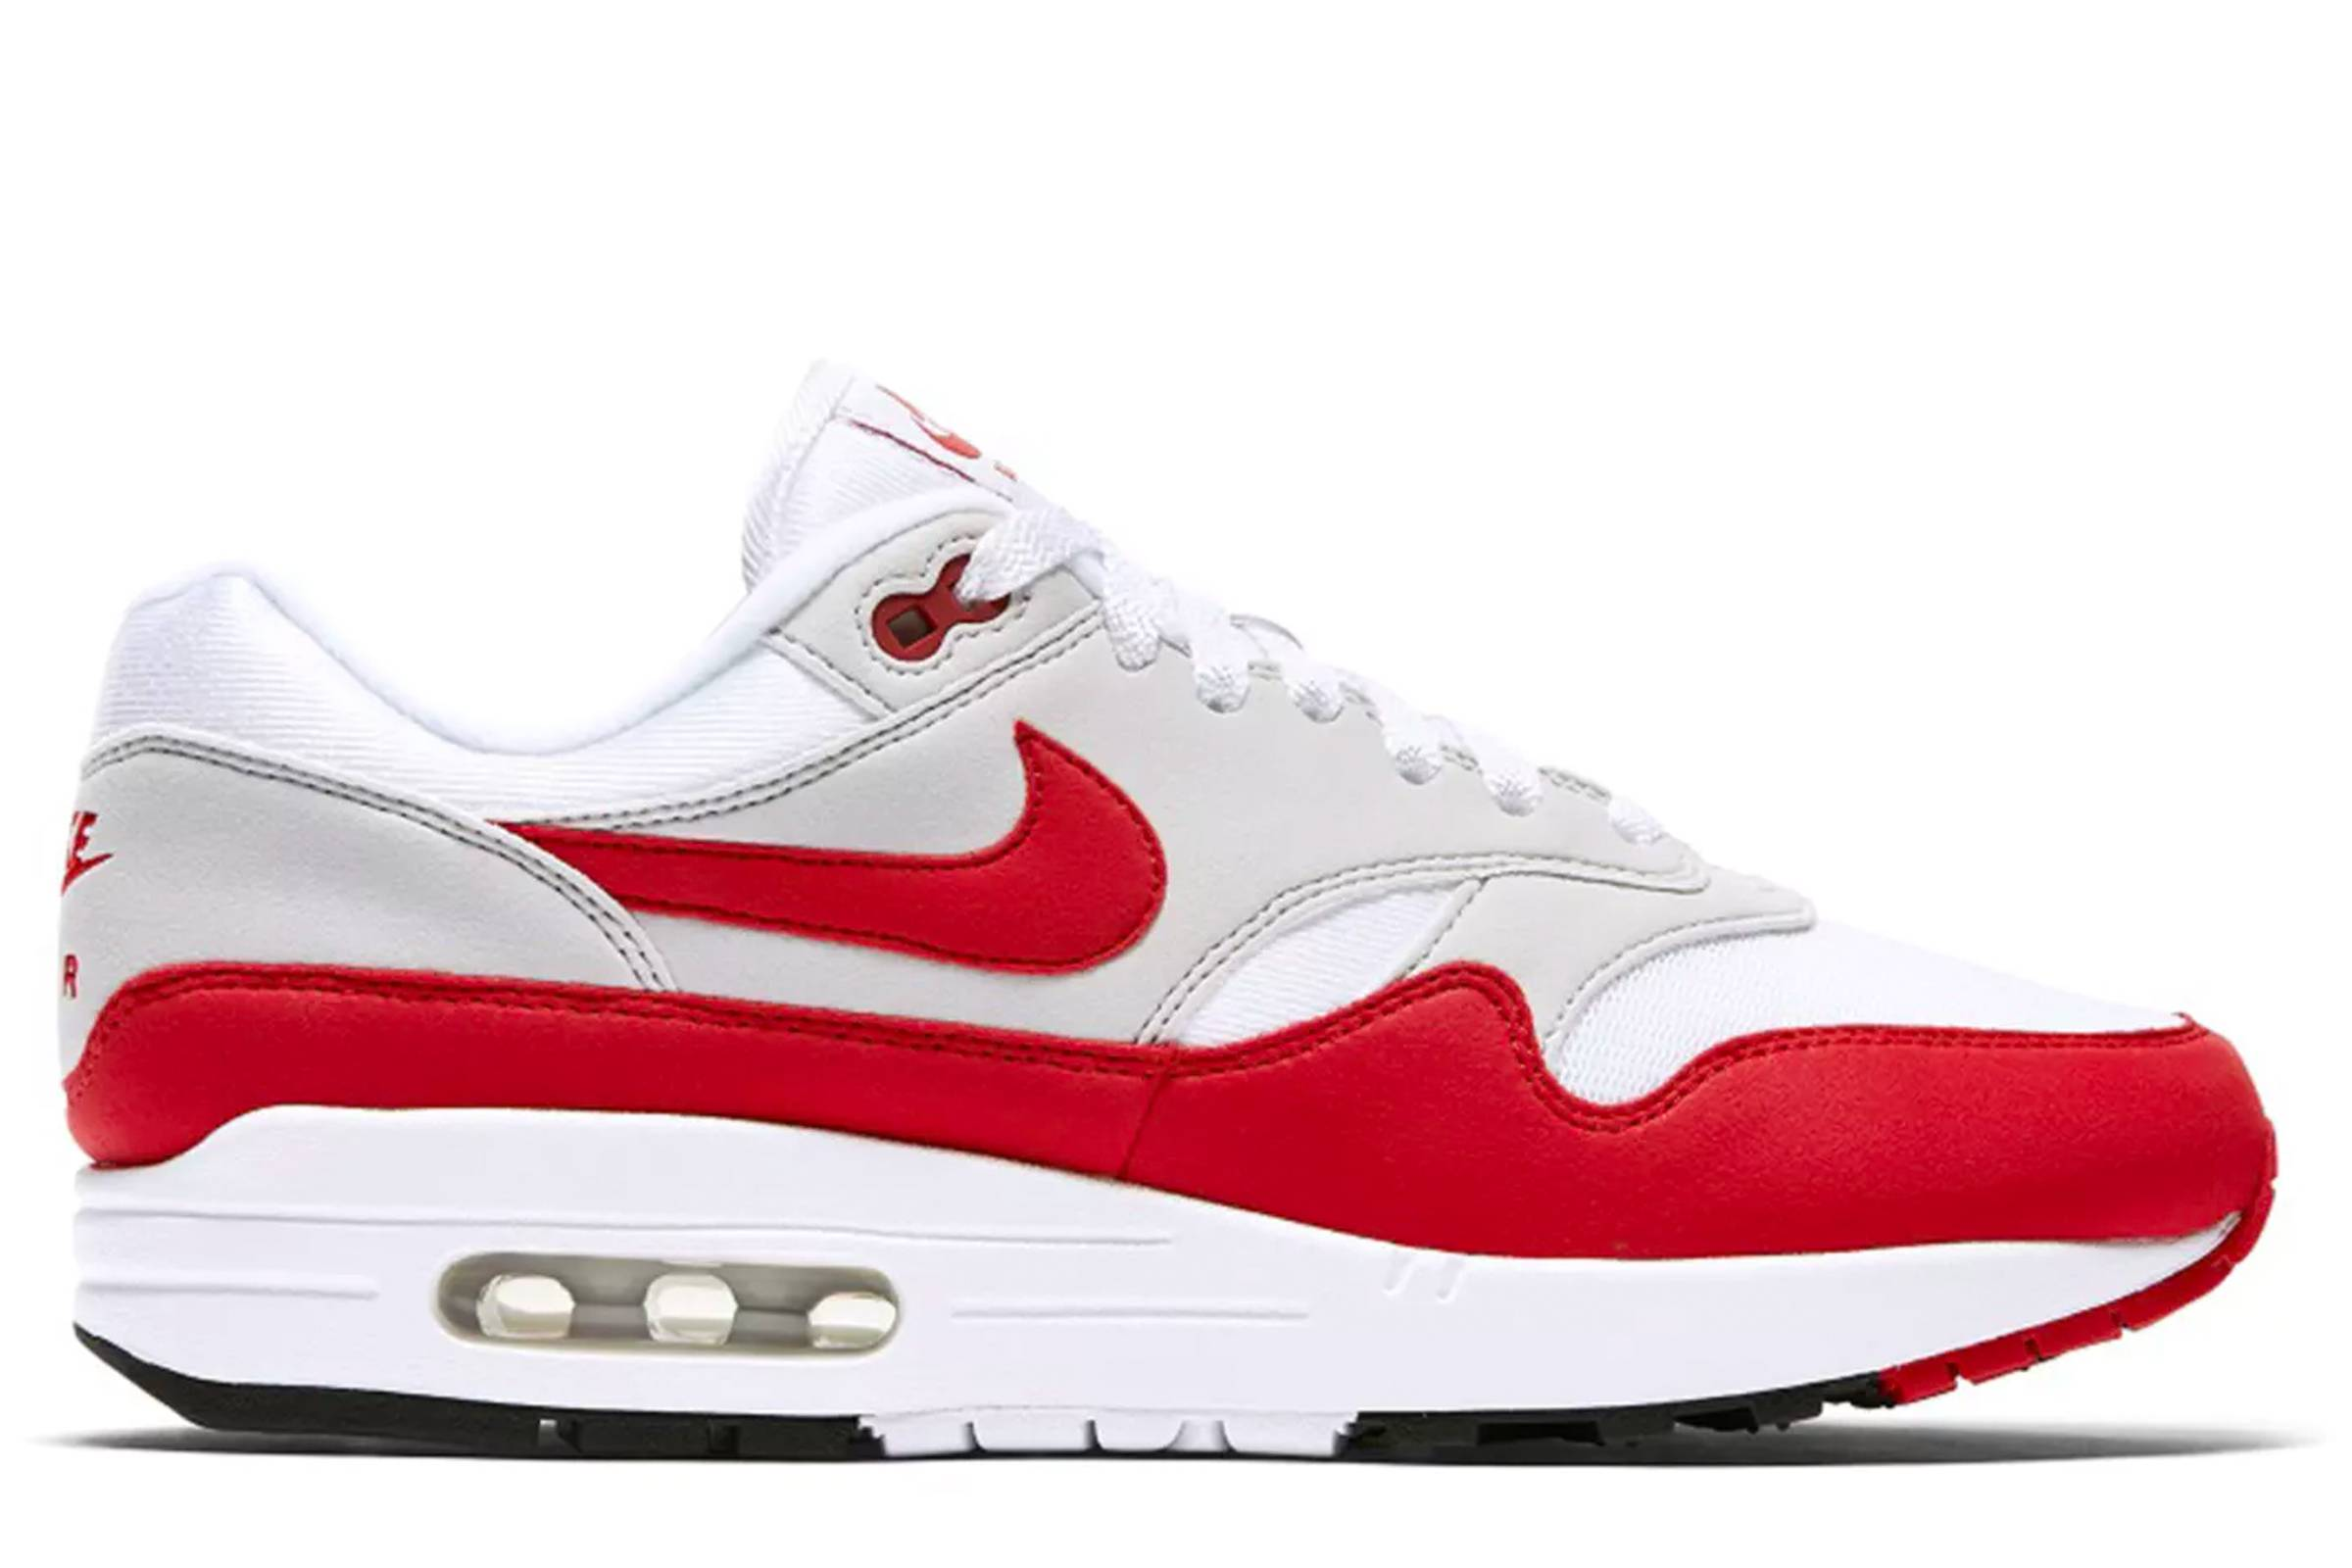 ec3bebec745dc The Birth of Air  A History of the Air Max 1 - Air Max 1 History ...